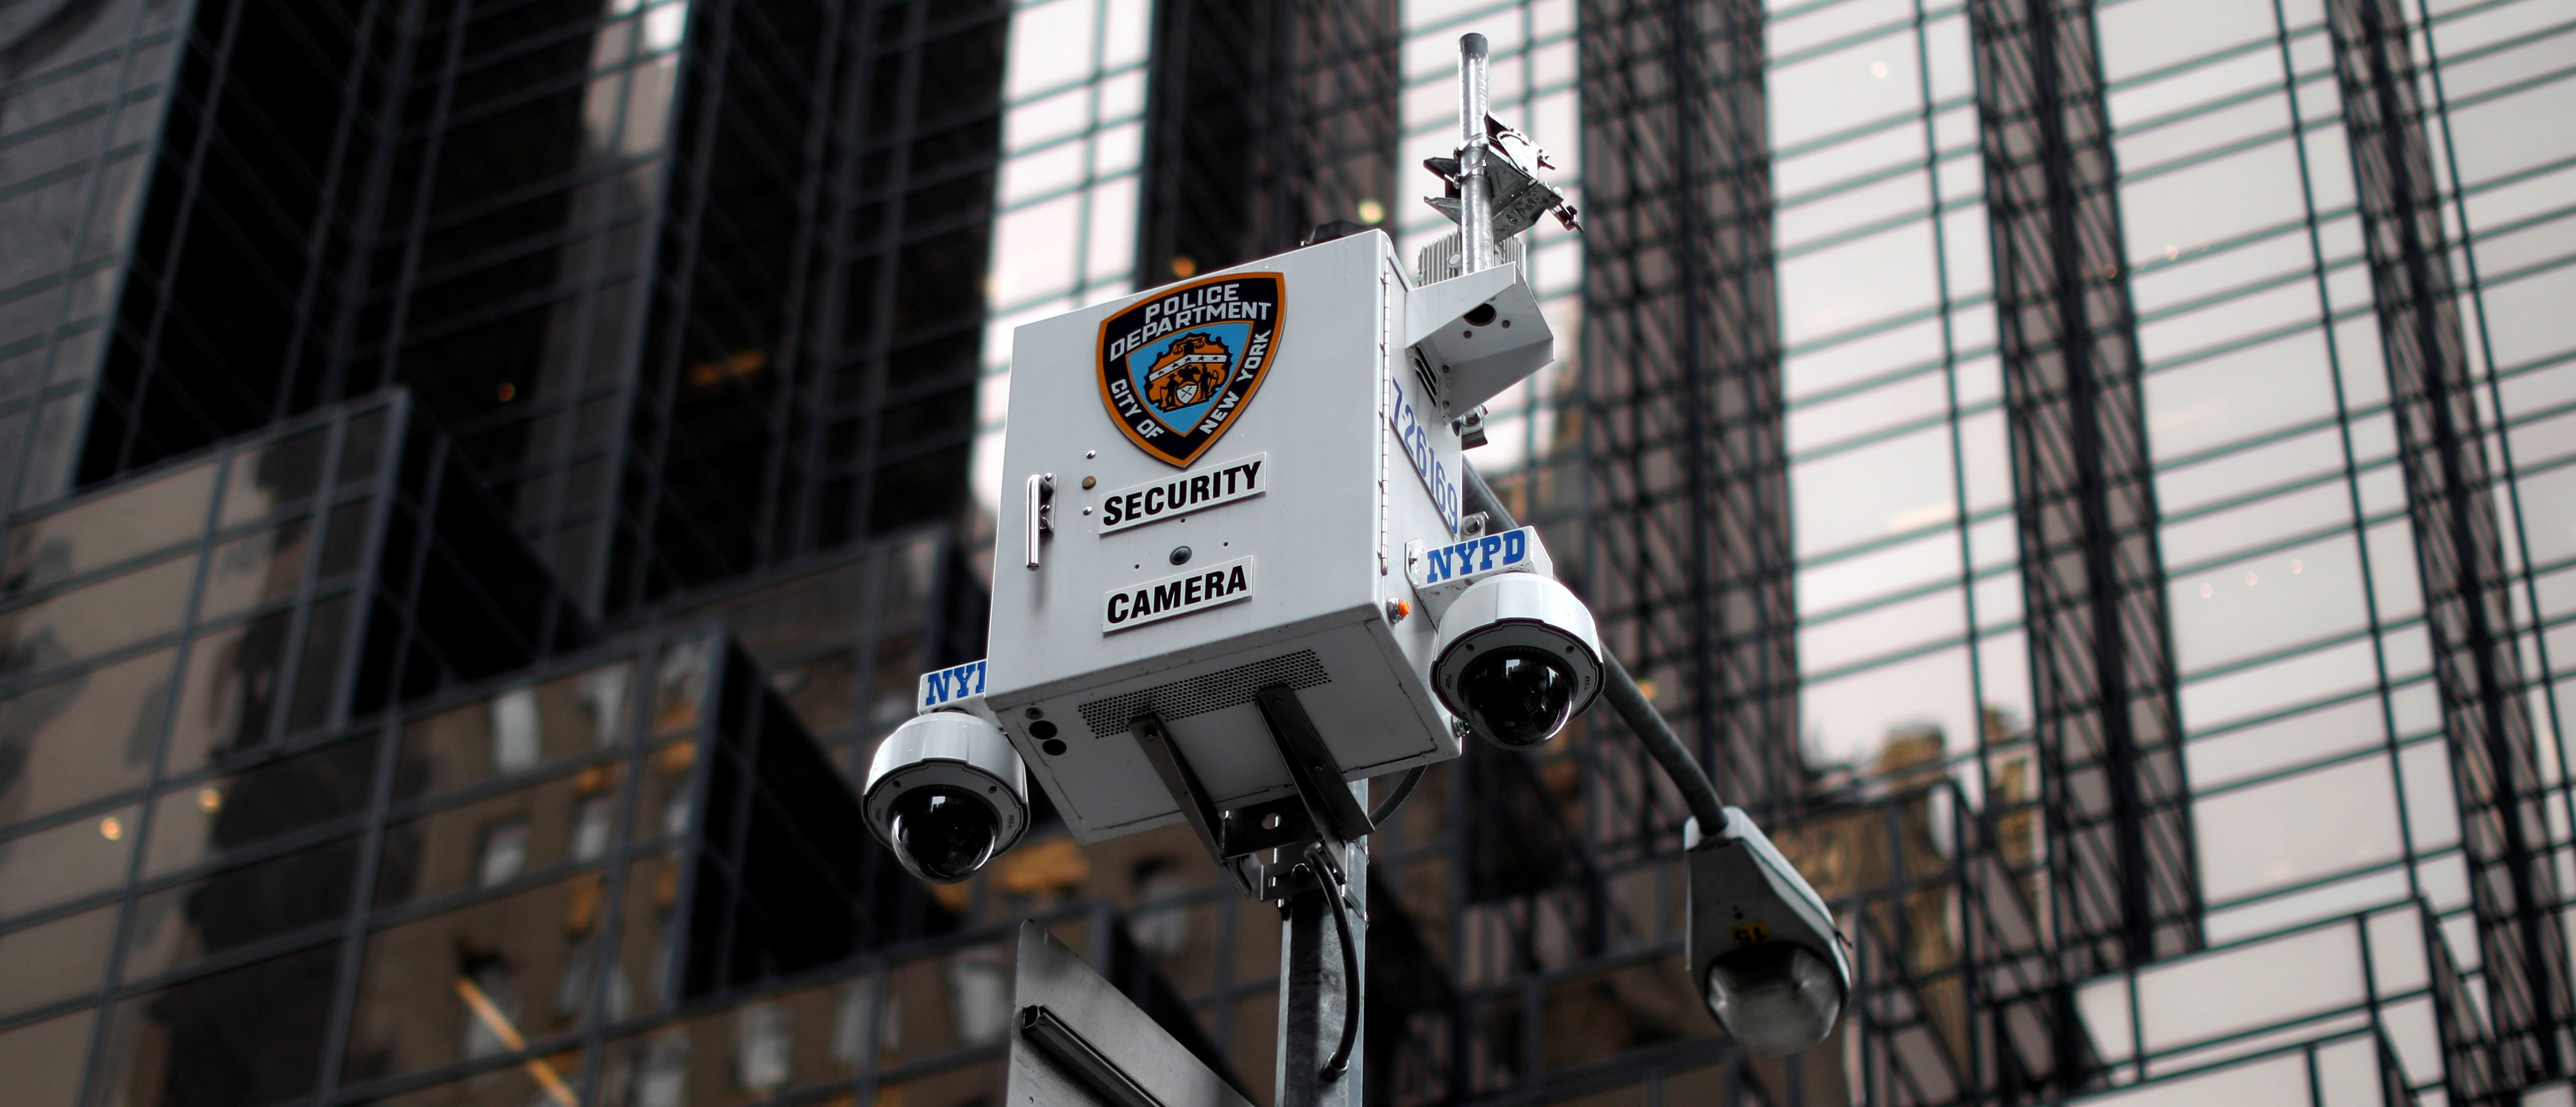 New York City Police Department (NYPD) security cameras are seen outside Trump Tower on 5th Avenue in New York City, April 26, 2017. REUTERS/Mike Segar